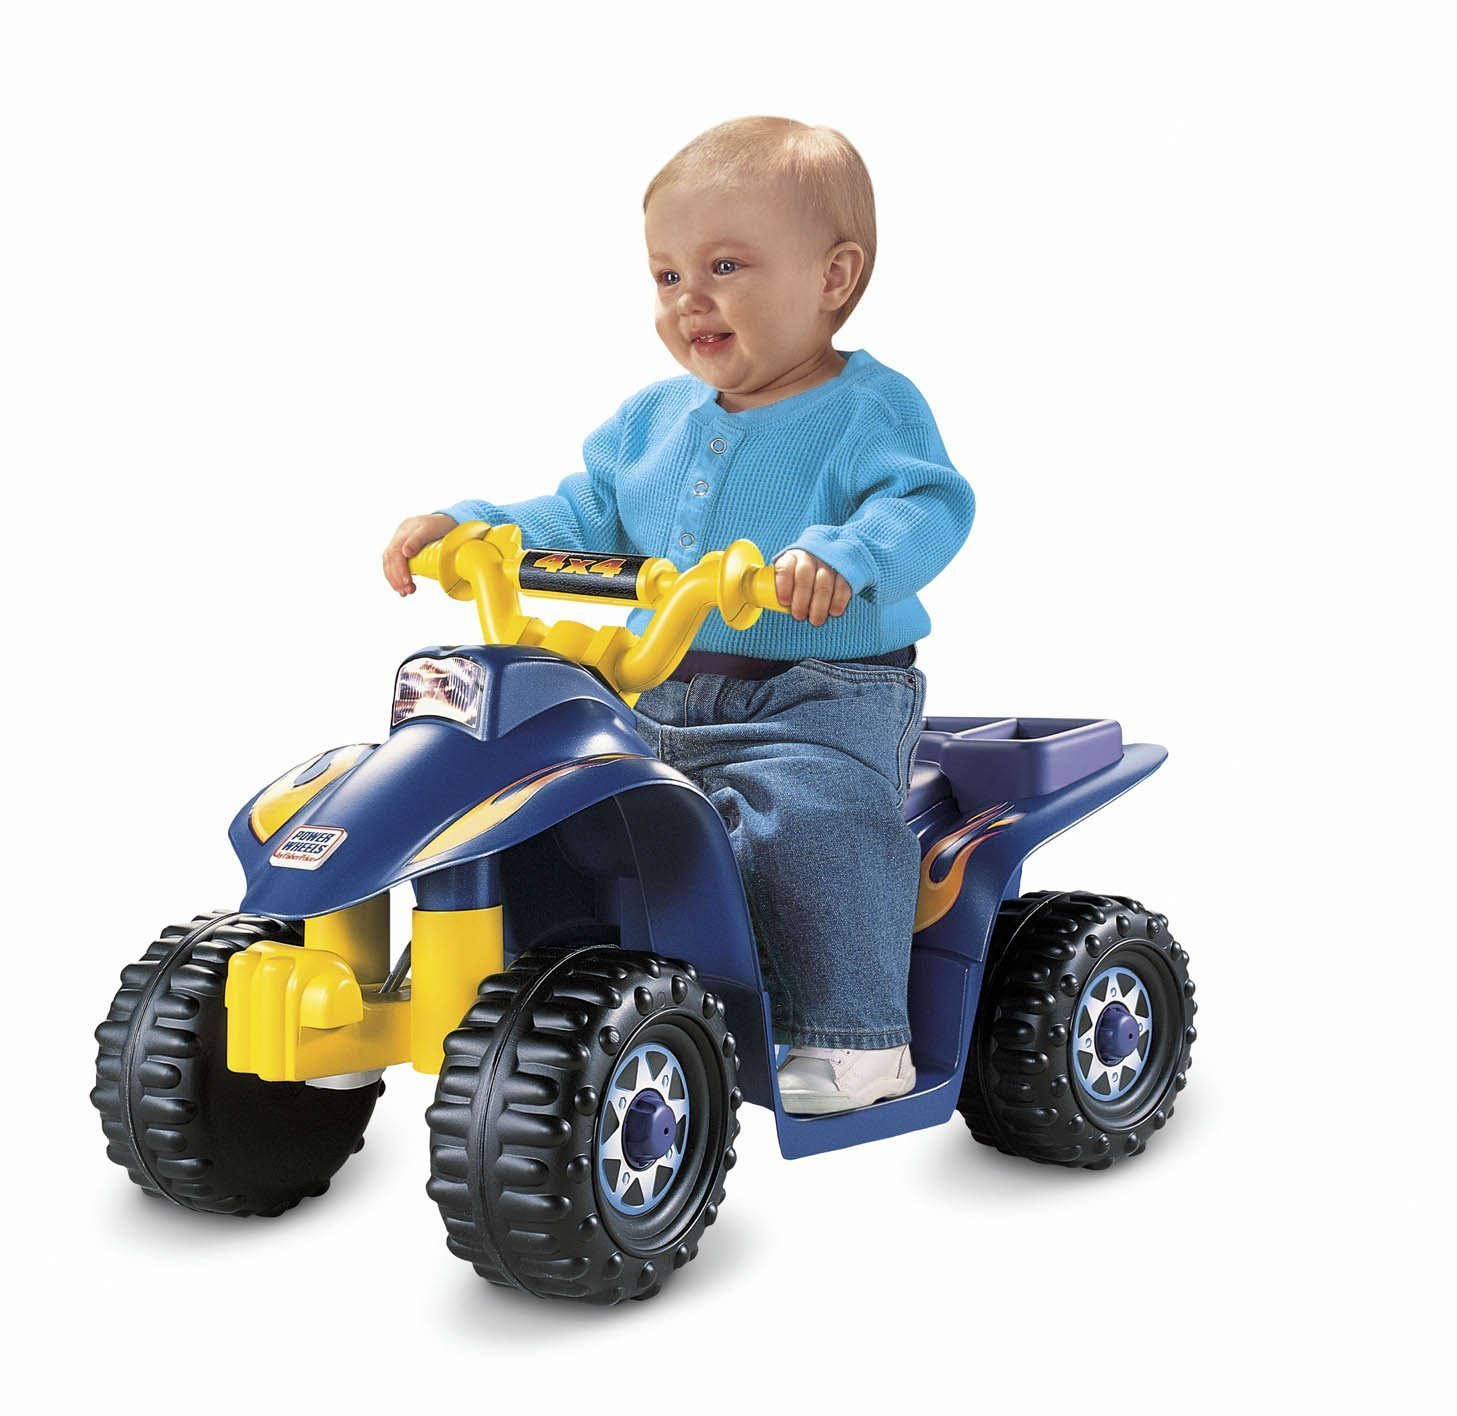 Power Wheels Lil' Quad Kids ATV Black Friday deal 2019